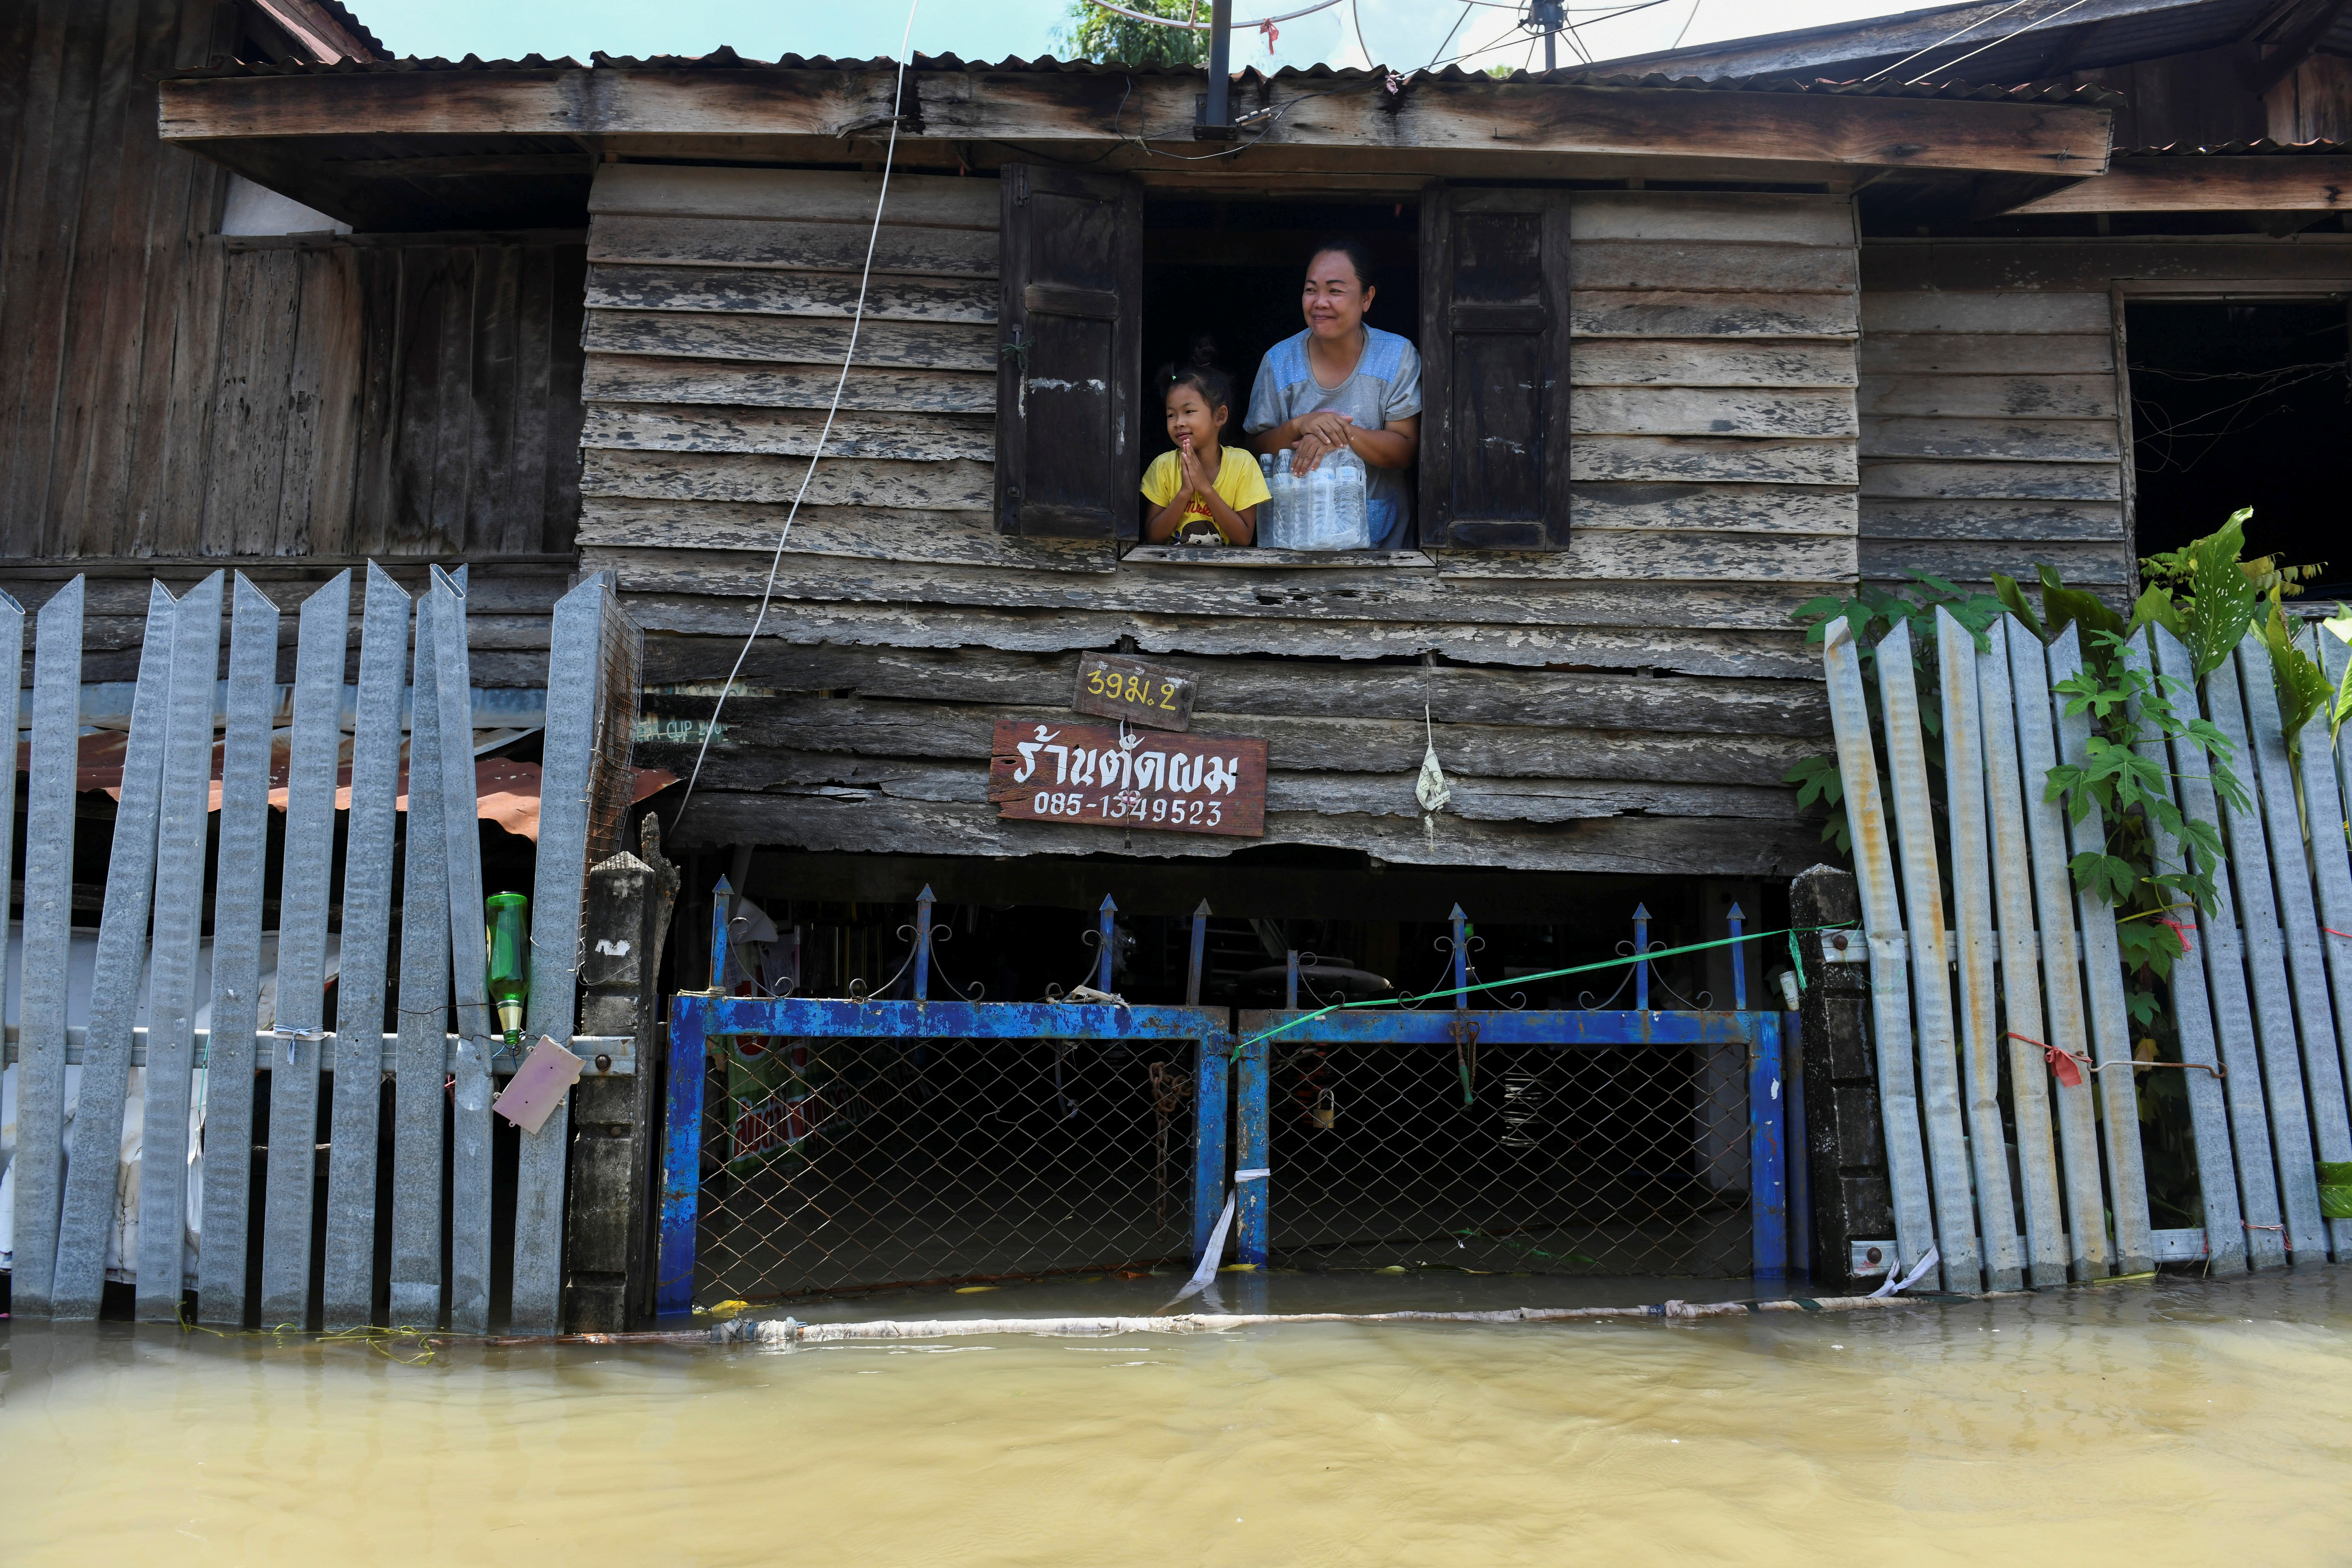 A mother and daughter are seen on the second floor of their house in a flooded area in Ban Sai village, Ban Mi district in Lopburi province, Thailand, September 30, 2021. REUTERS/Panumas Sanguanwong